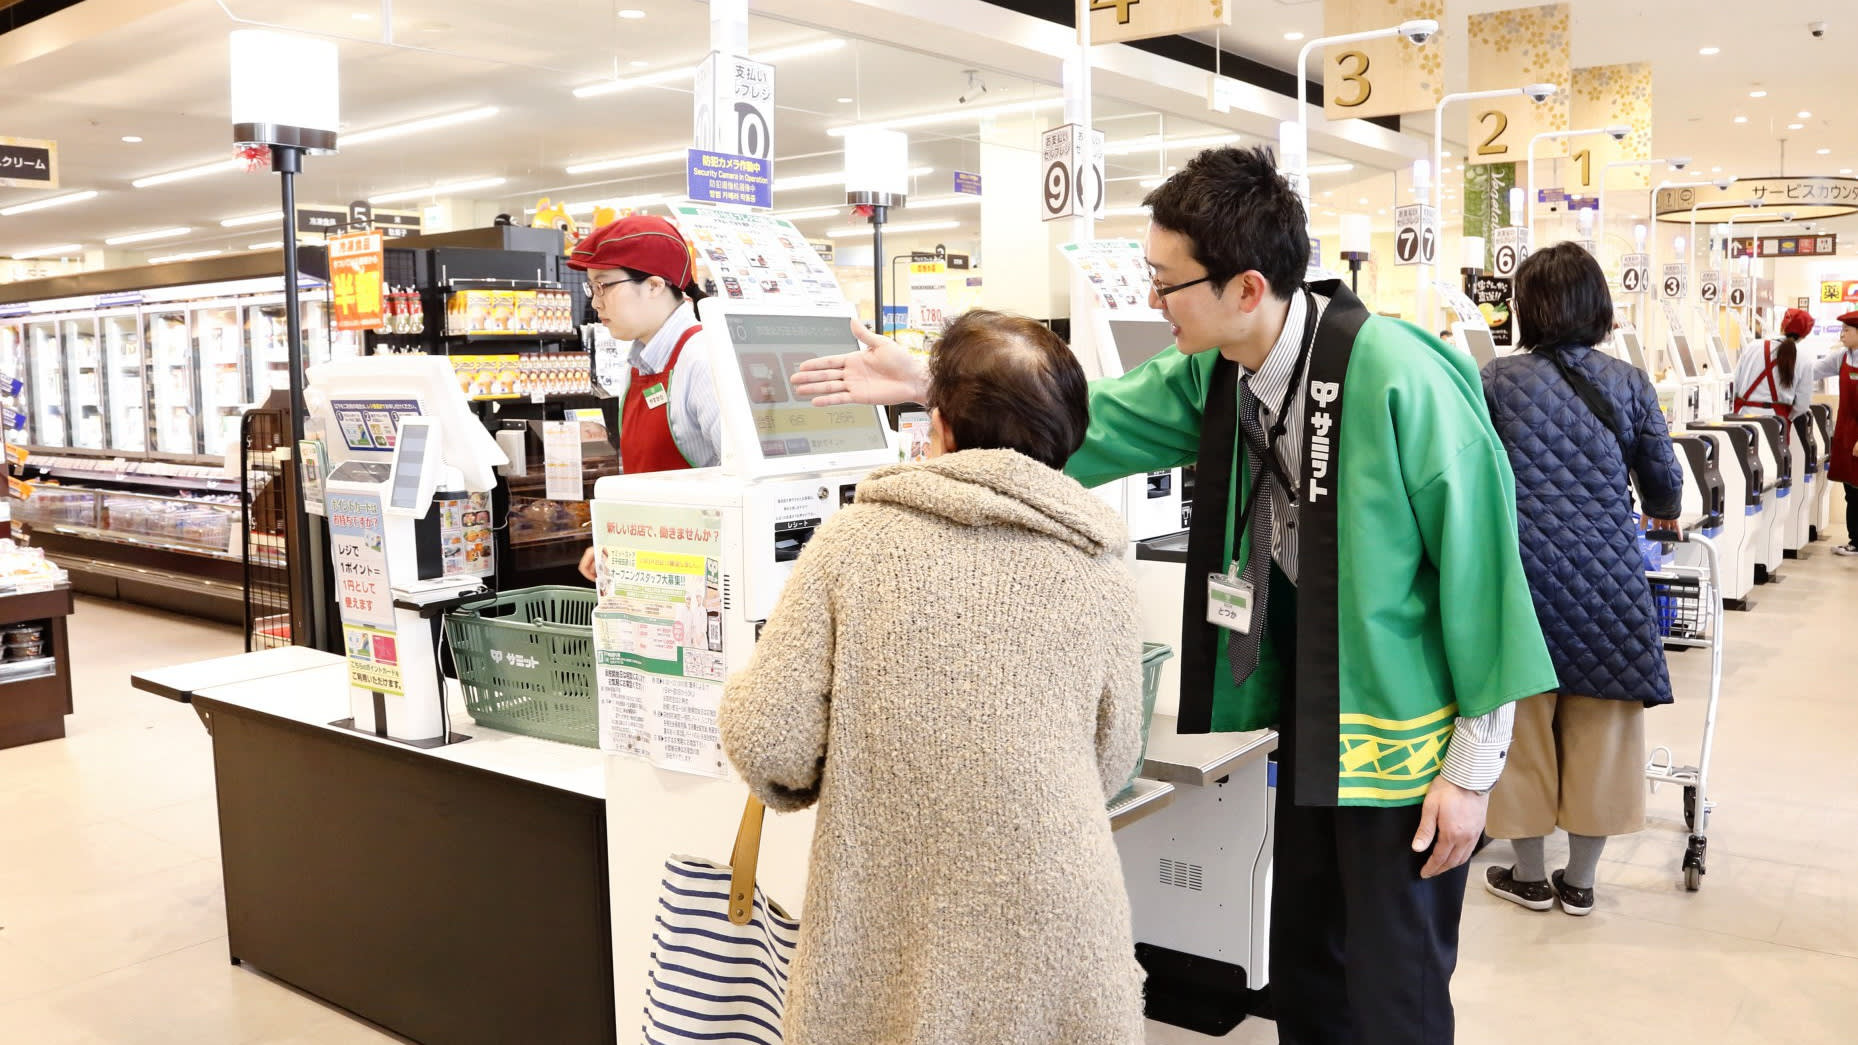 A Summit supermarket in Tokyo. Parent company Sumitomo plans to bring the Japanese-style retail experience to Vietnam.